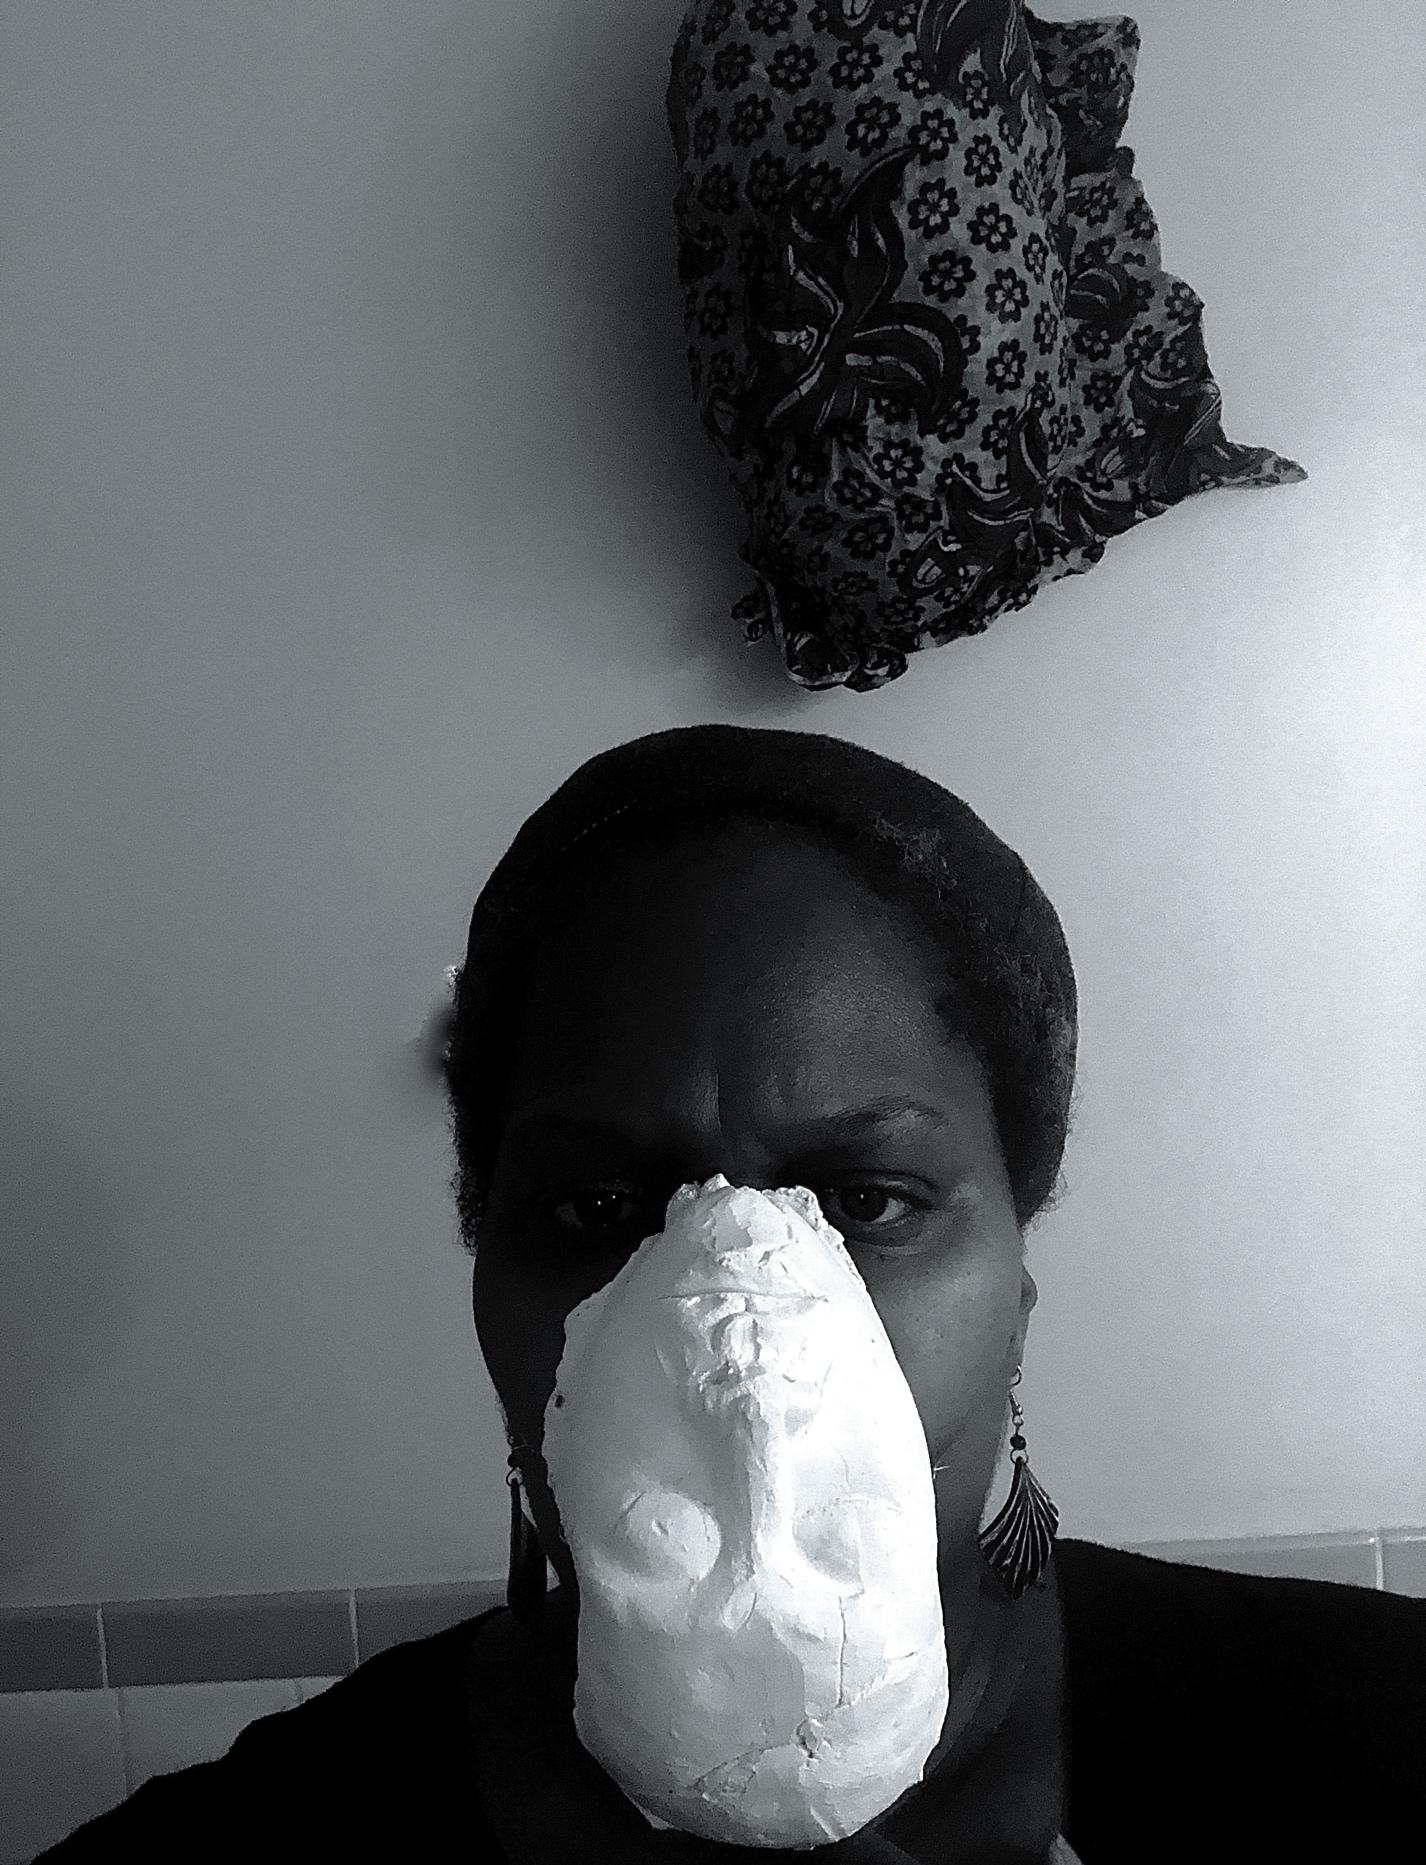 Mac OS:Users:aisha:Desktop:self portrait in mask 2020.JPEG